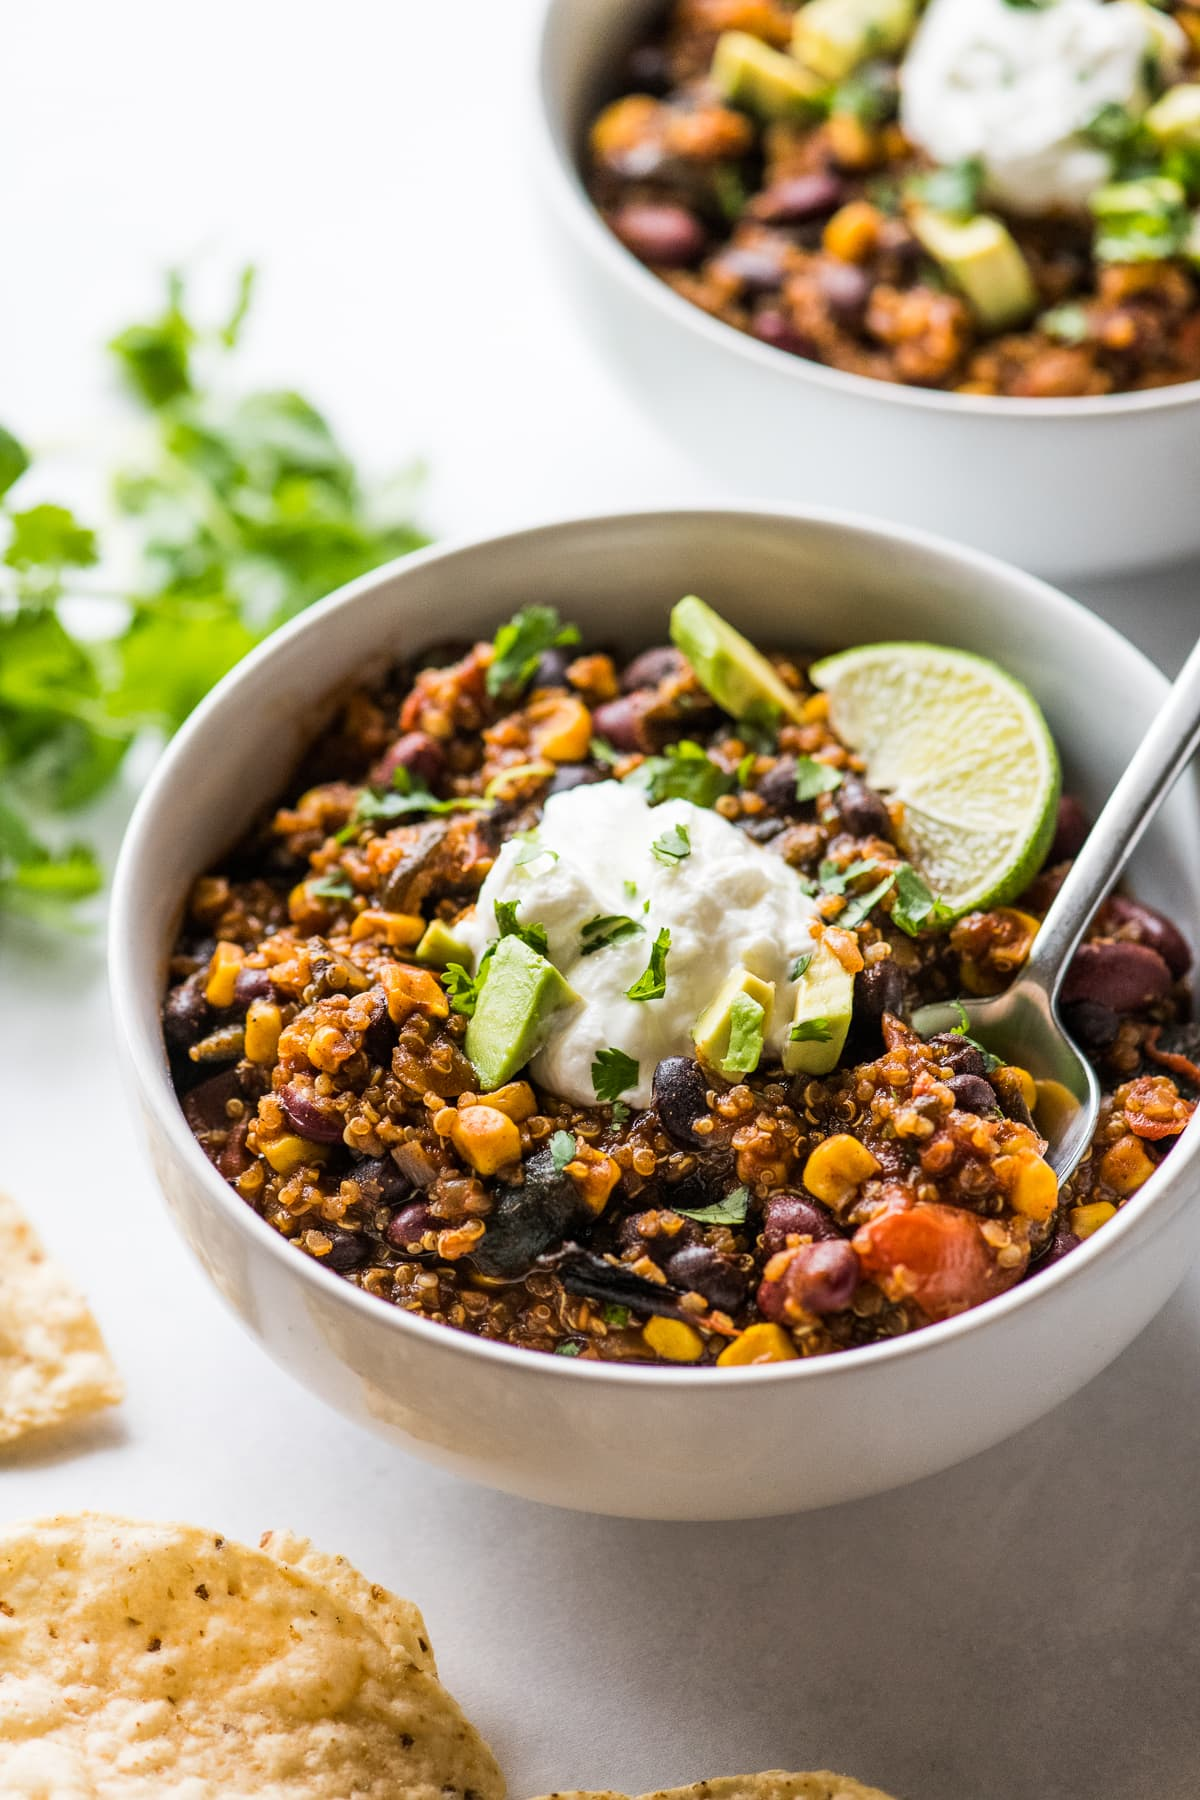 A bowl of vegetarian black bean and quinoa chili with a spoon.